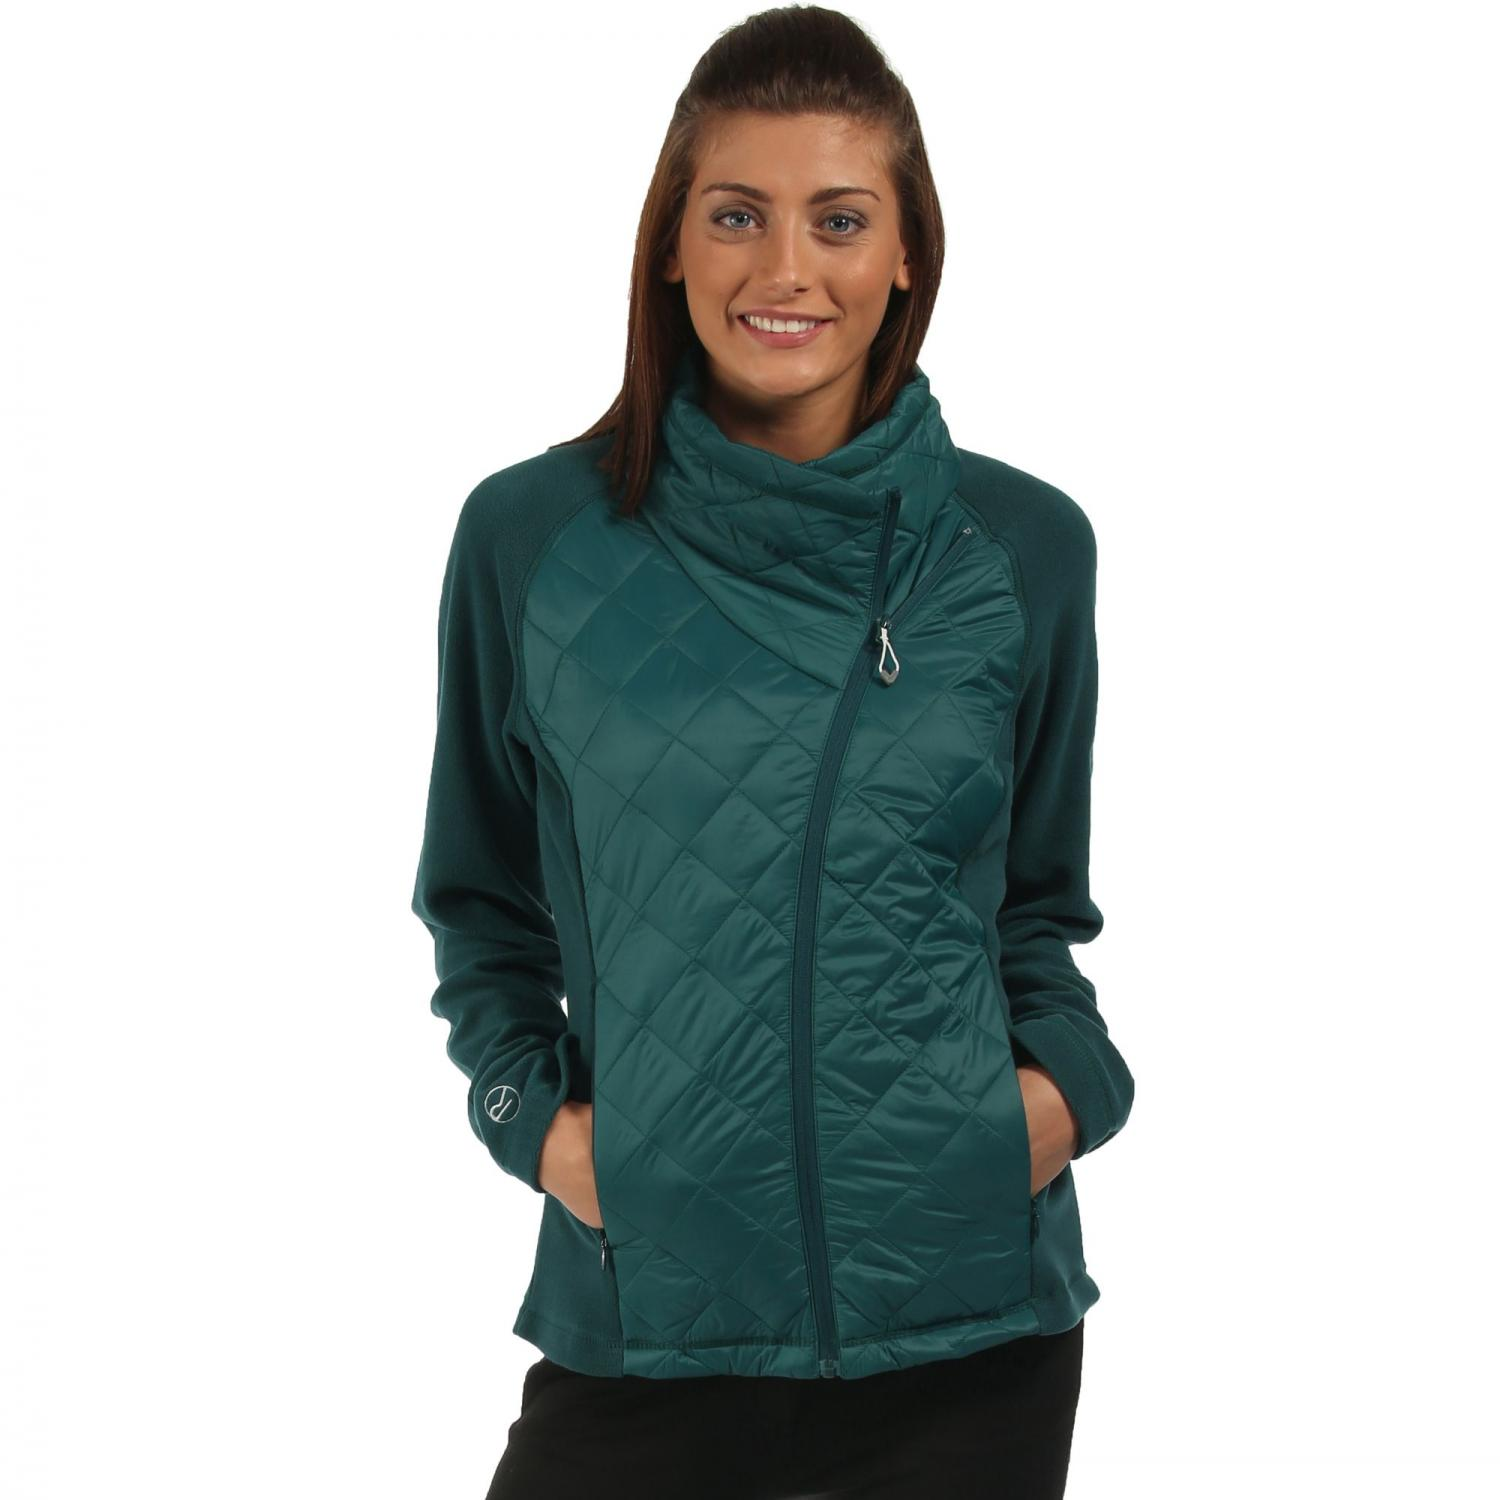 Womens Chilton Hybrid Jacket Deep Teal